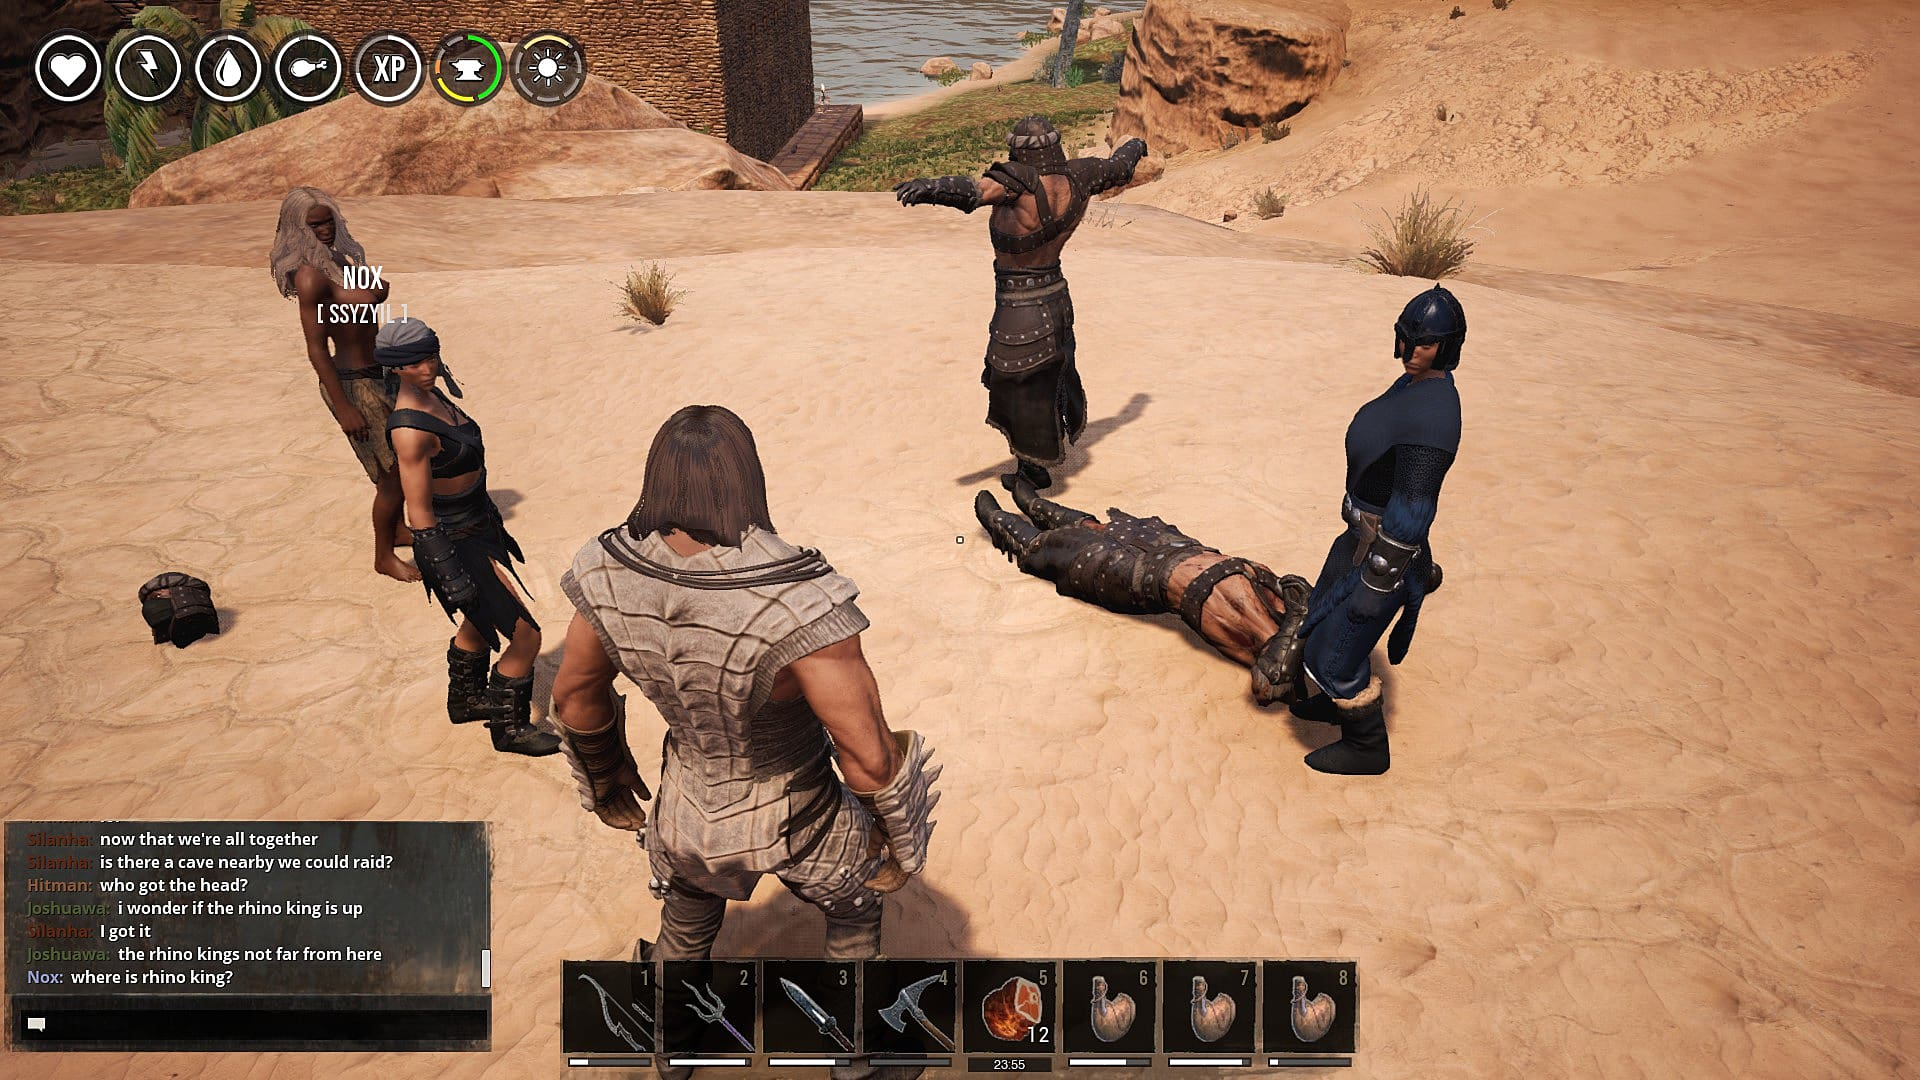 Conan Exiles PvE Guide: Best Weapons, Builds, Locations, and Servers | Conan Exiles